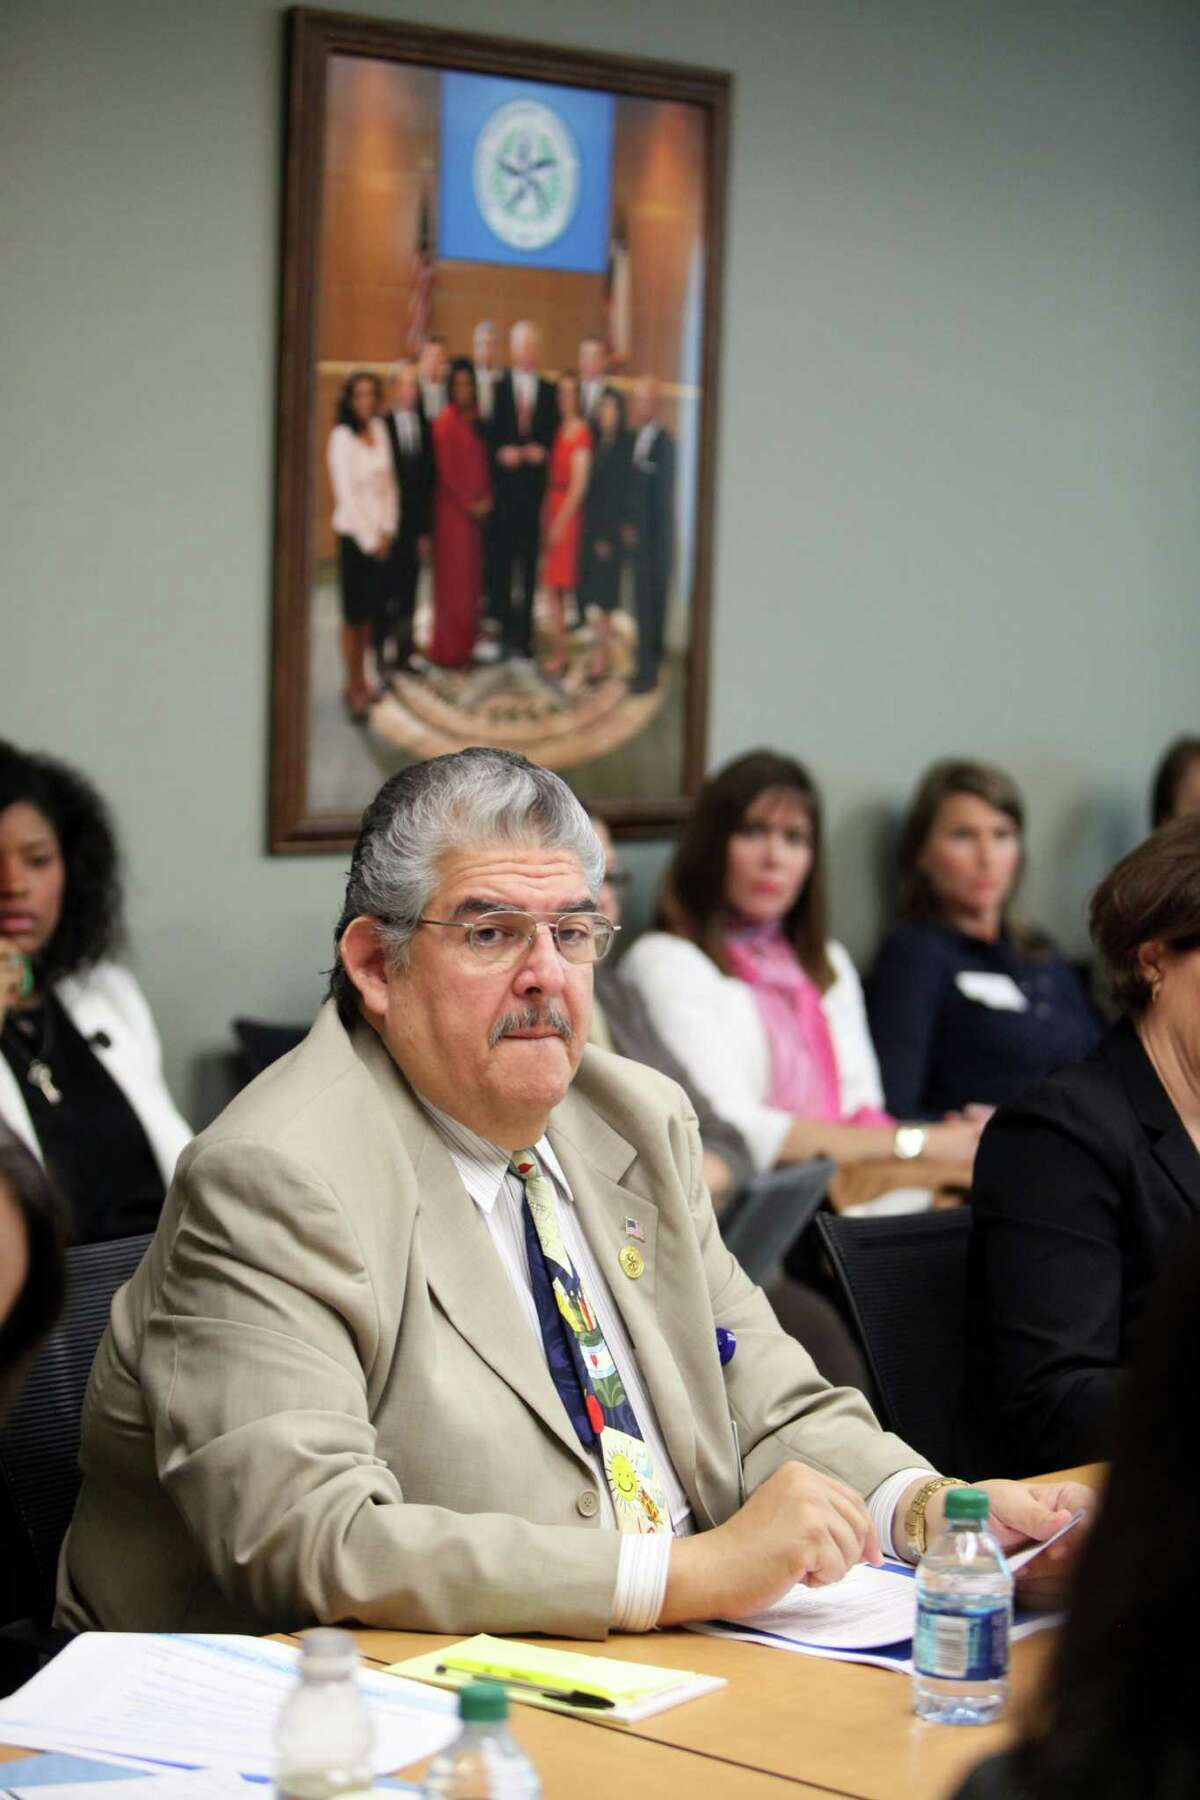 HISD trustee Manuel Rodriguez, Jr. listens to HISD president as she speaks in favor of Mexican American Studies resolution on April 3, 2014, in Houston, Tx. Despite some debate, the HISD Board voted unanimously for a resolution supporting State Board to develop a Mexican American Studies courses. ( Mayra Beltran / Houston Chronicle )